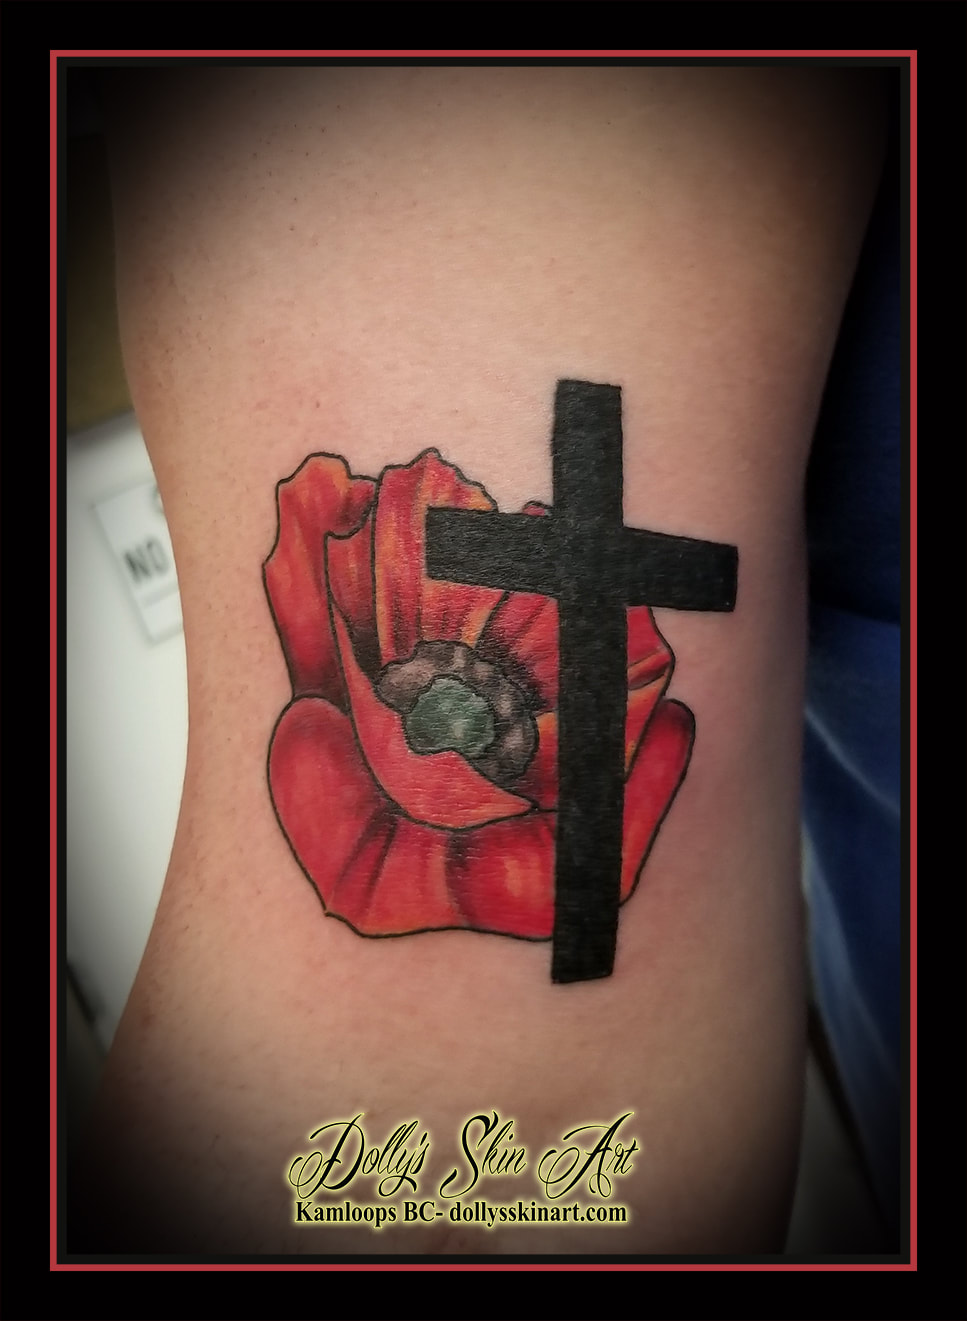 poppy cross tattoo red black grey shading arm tattoo kamloops dolly's skin art